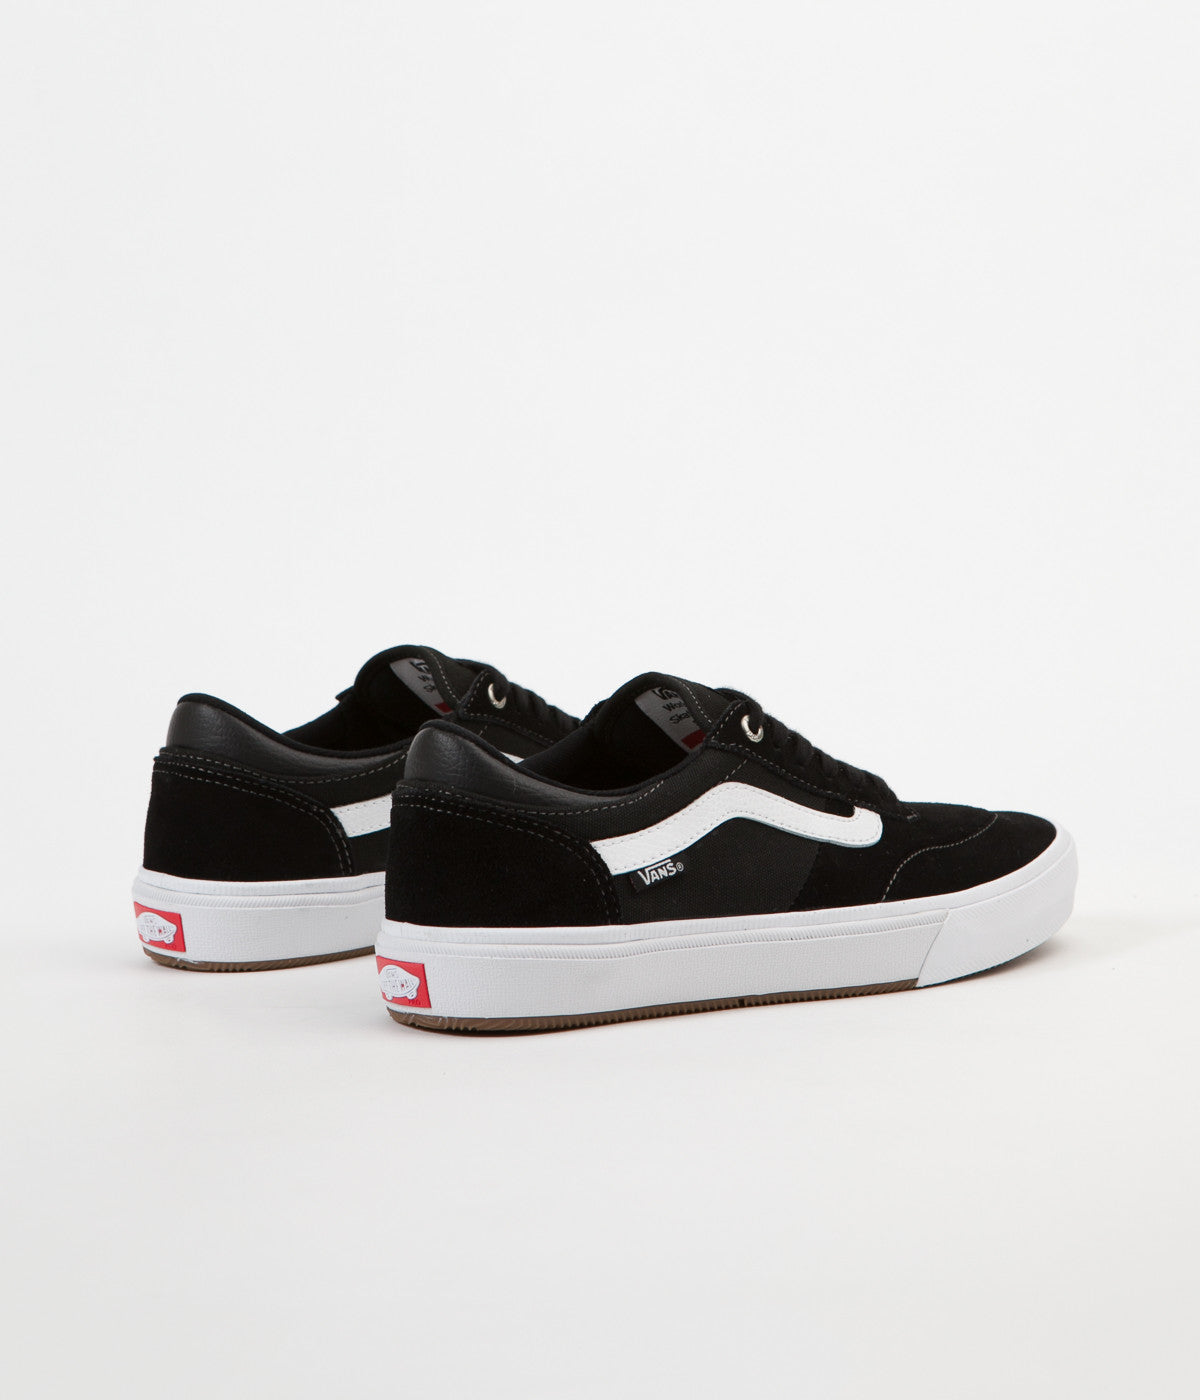 Vans Gilbert Crockett 2 Pro Shoes - Black / White